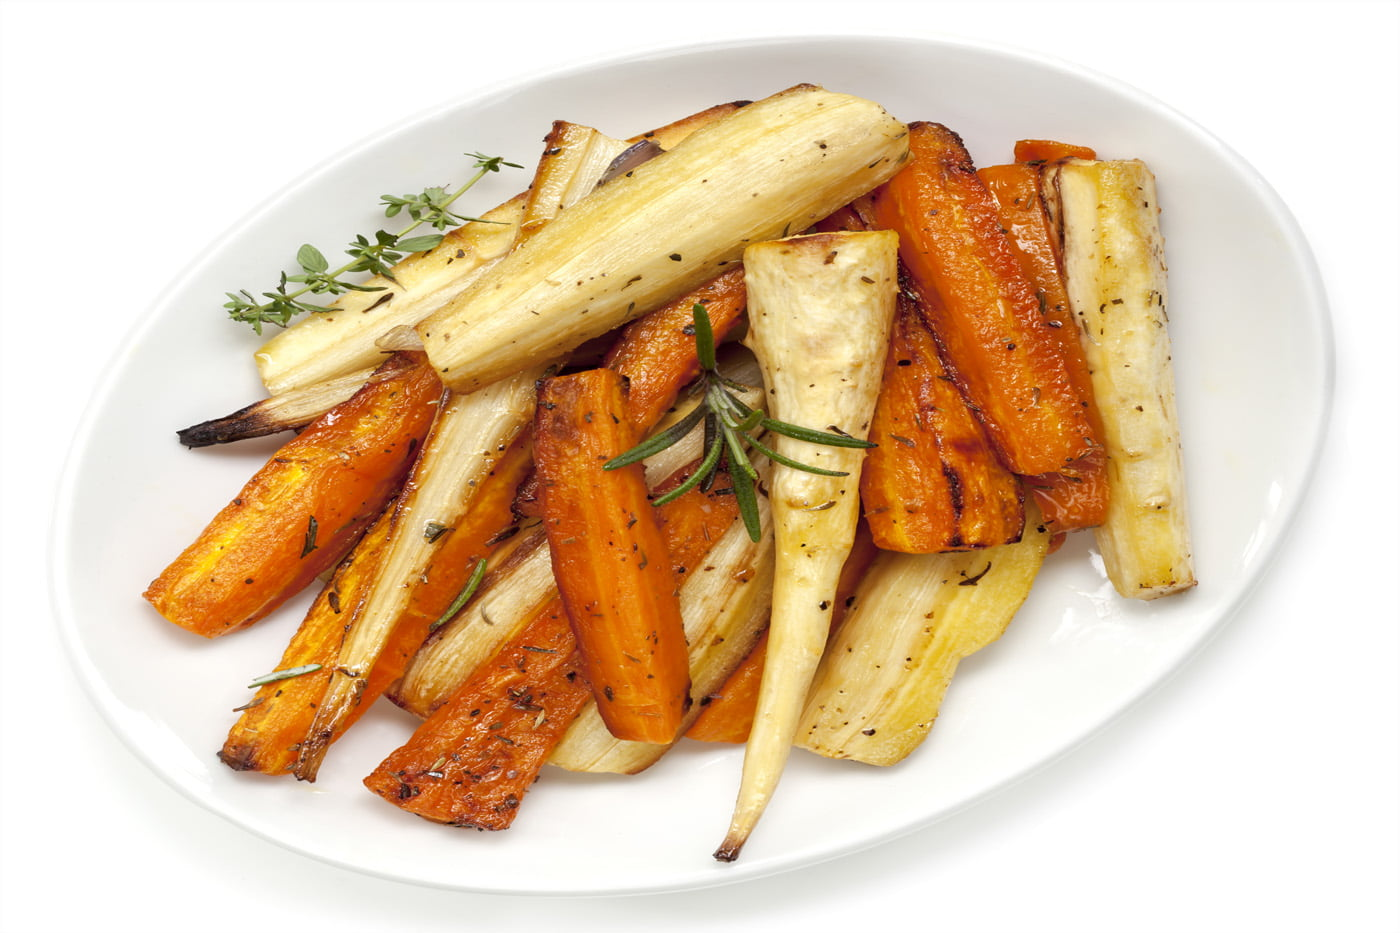 How To Make Sticky Maple-Glazed Parsnips And Carrots